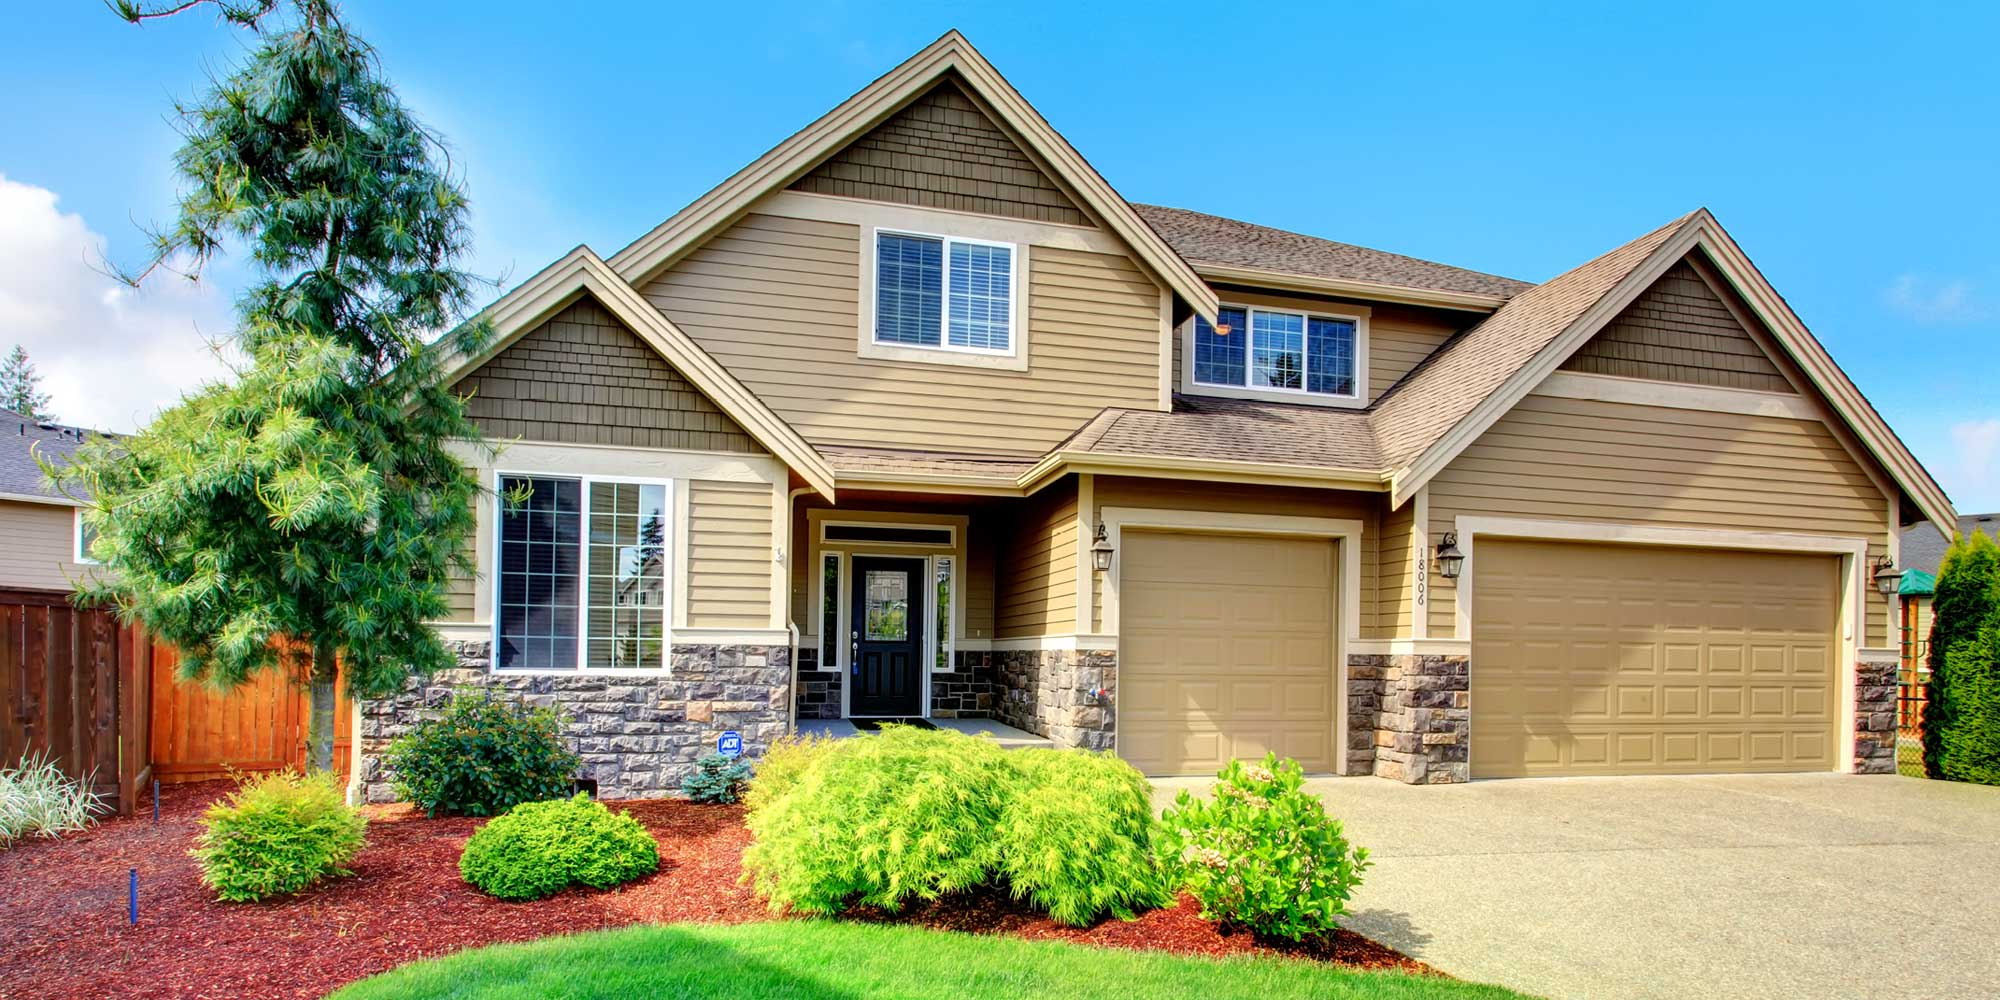 A clean house with professionally installed tan siding